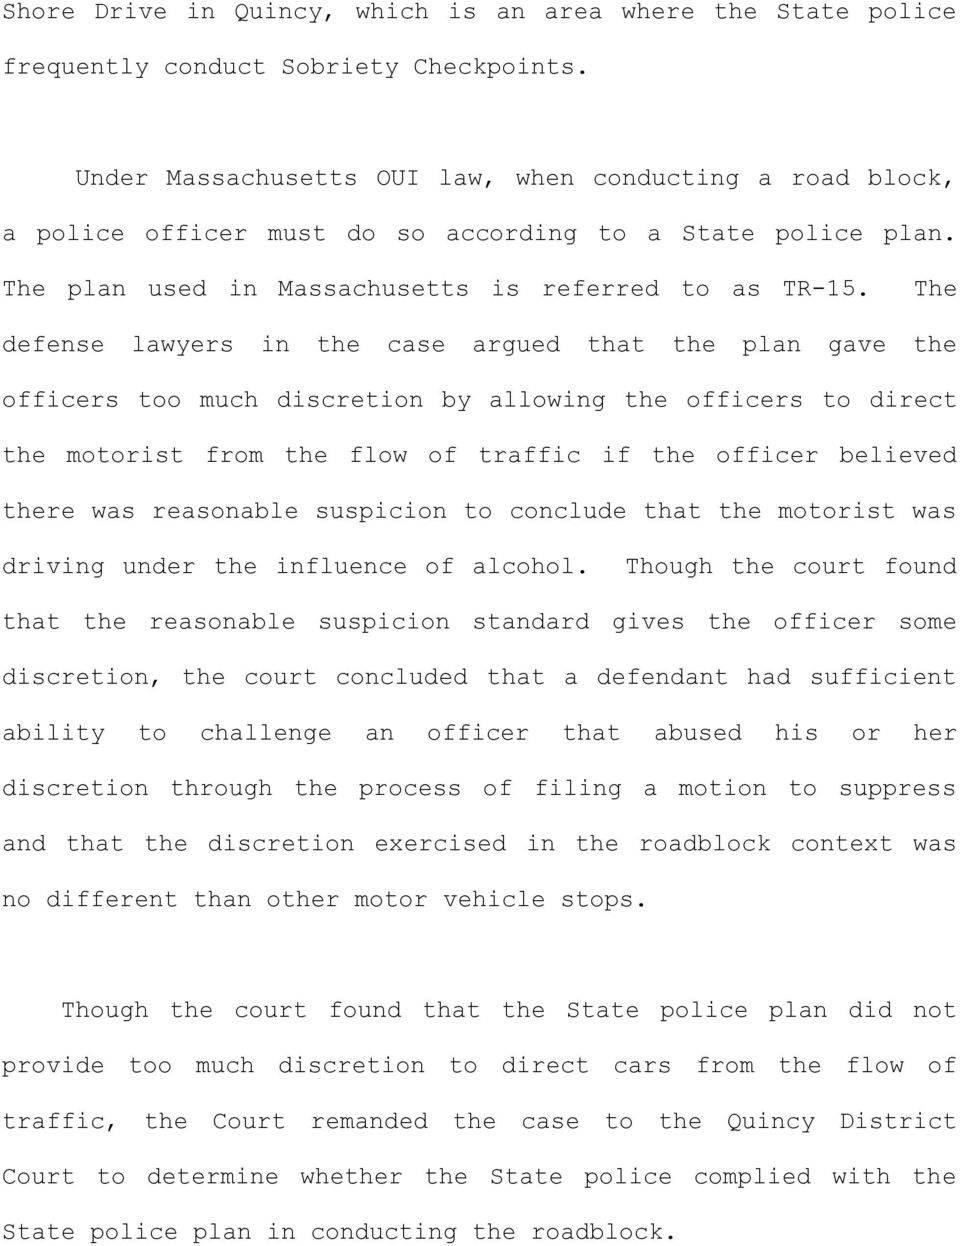 The defense lawyers in the case argued that the plan gave the officers too much discretion by allowing the officers to direct the motorist from the flow of traffic if the officer believed there was